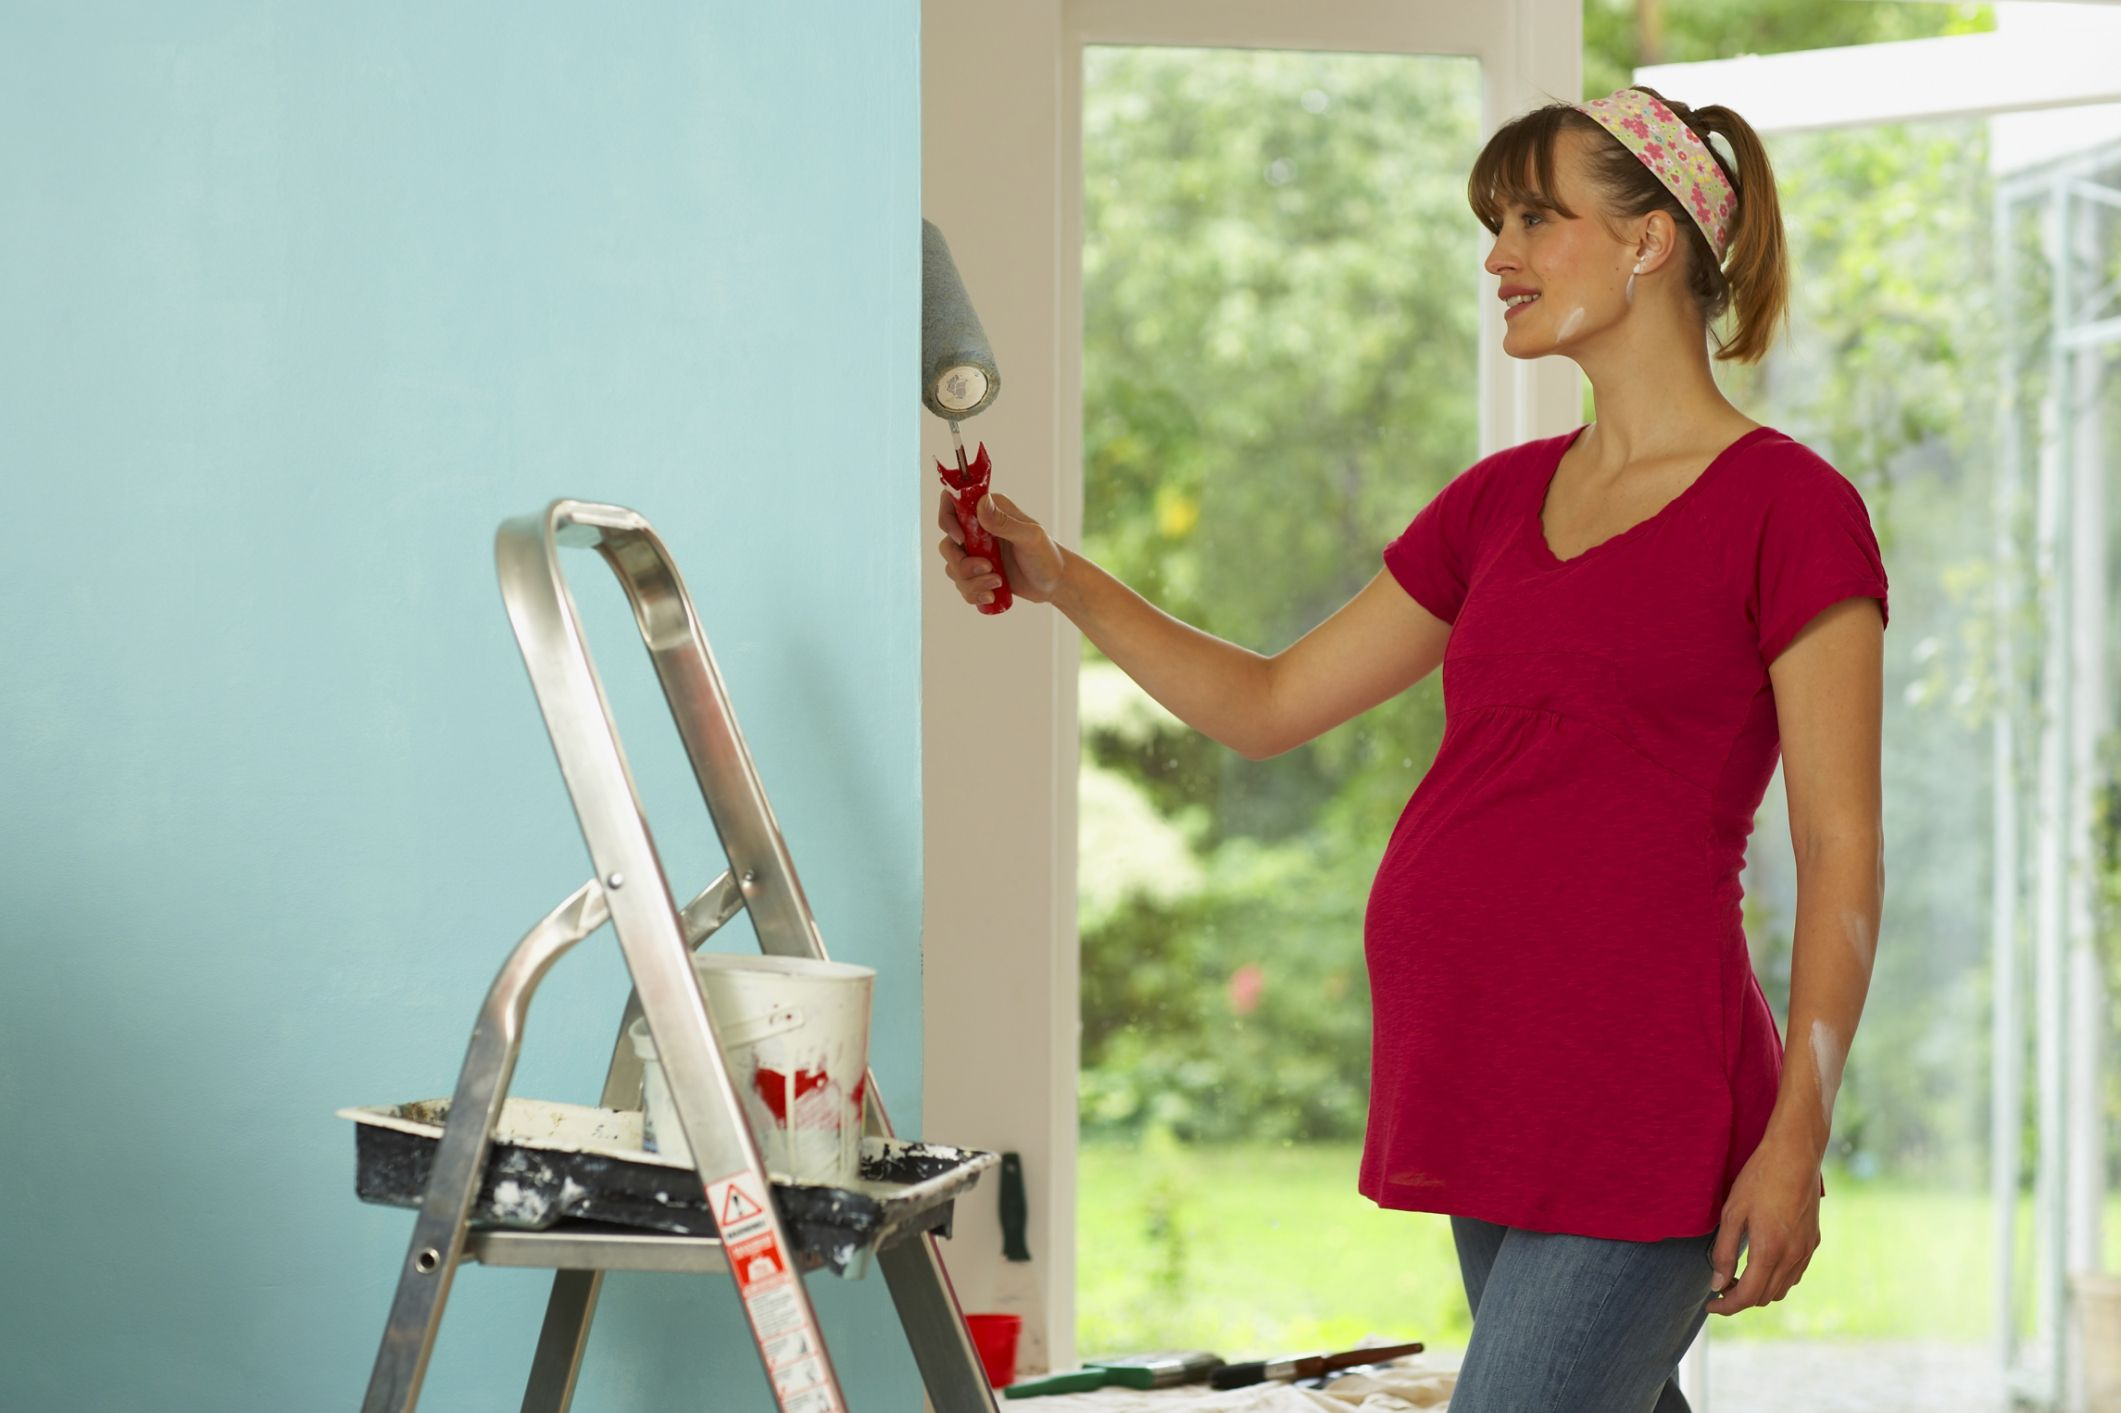 Painting While Pregnant Pregnancy Related - Can you paint while pregnant